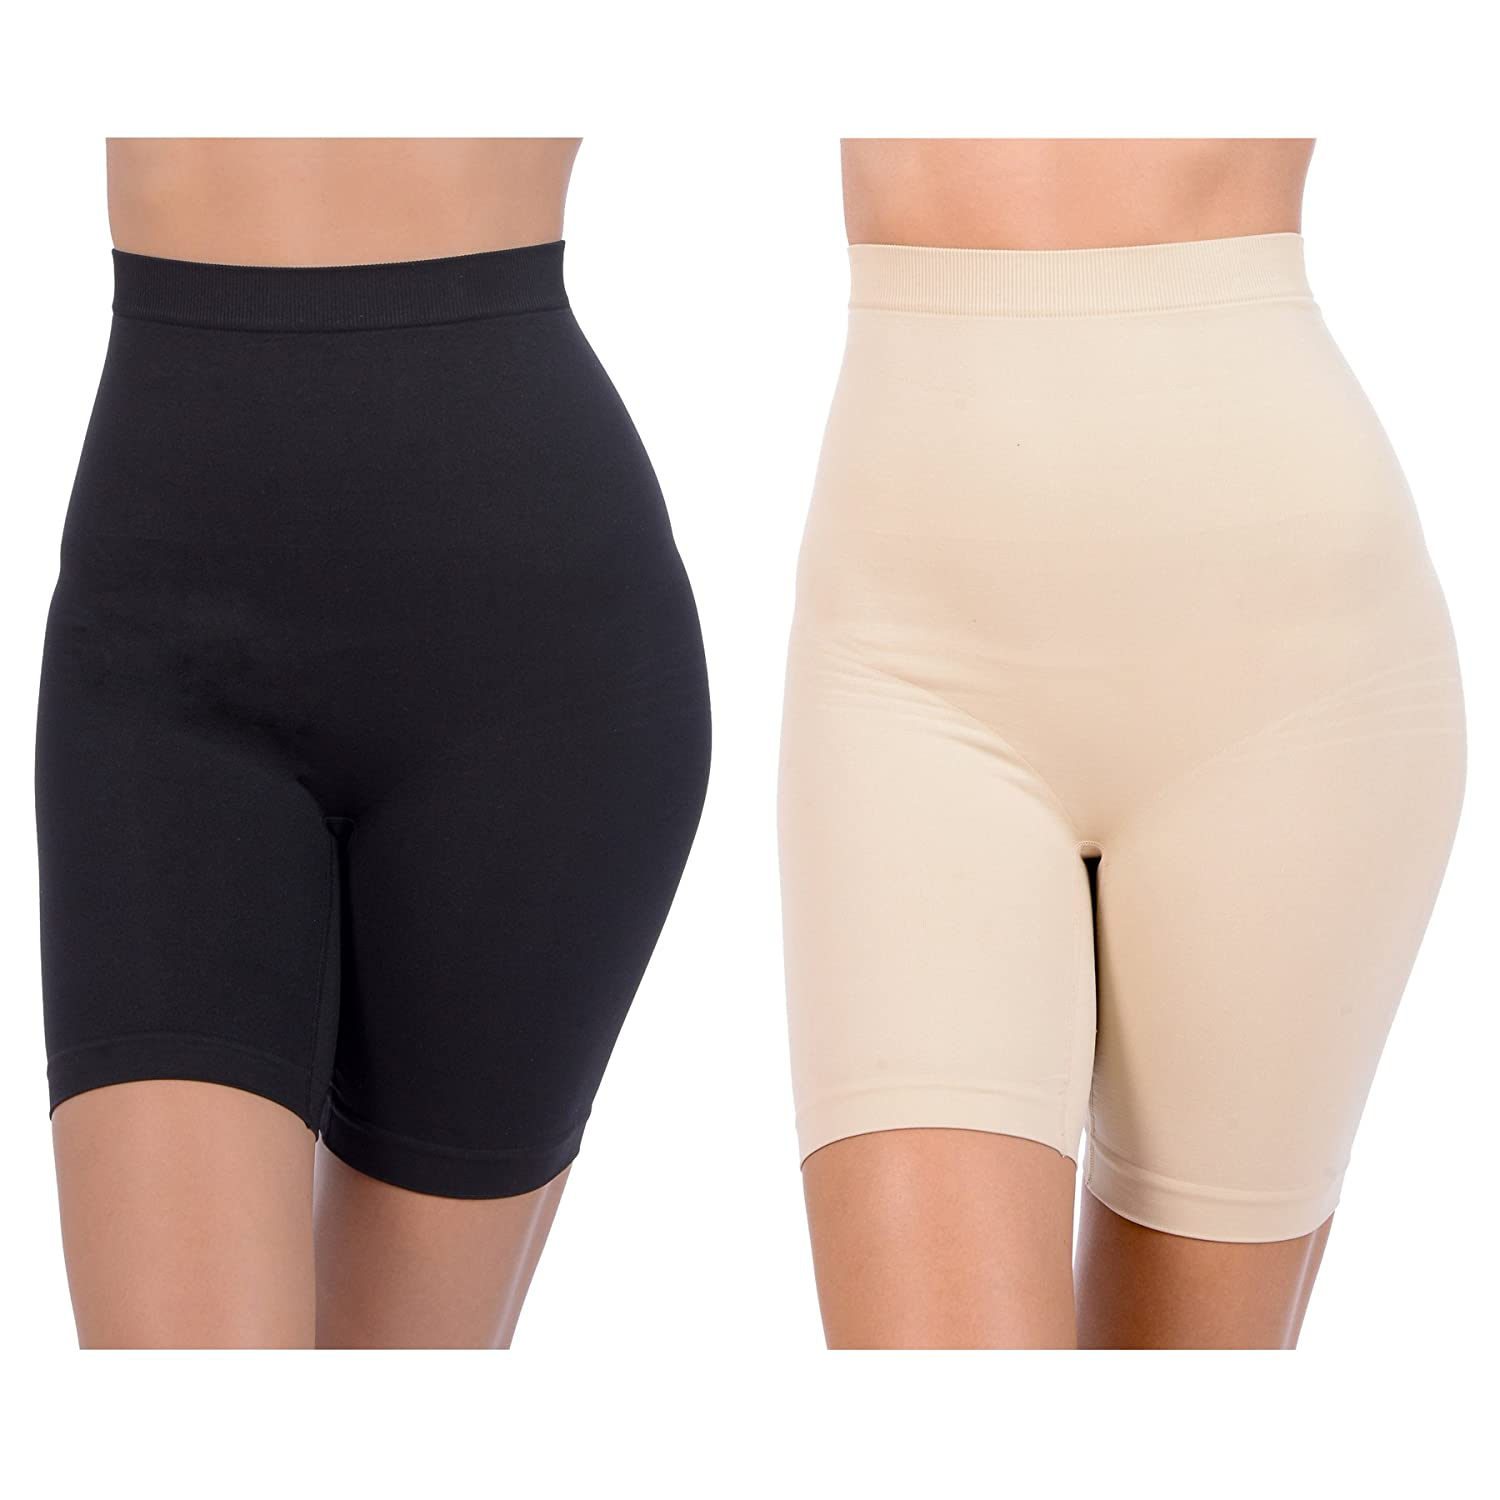 GCool Anti-Bacterial Fabric Hi-Waist Shapewear Shorts 2 Pack (Black/Nude, M) GCool Tech CKC_PLC_2247_BLACKNUDE_M